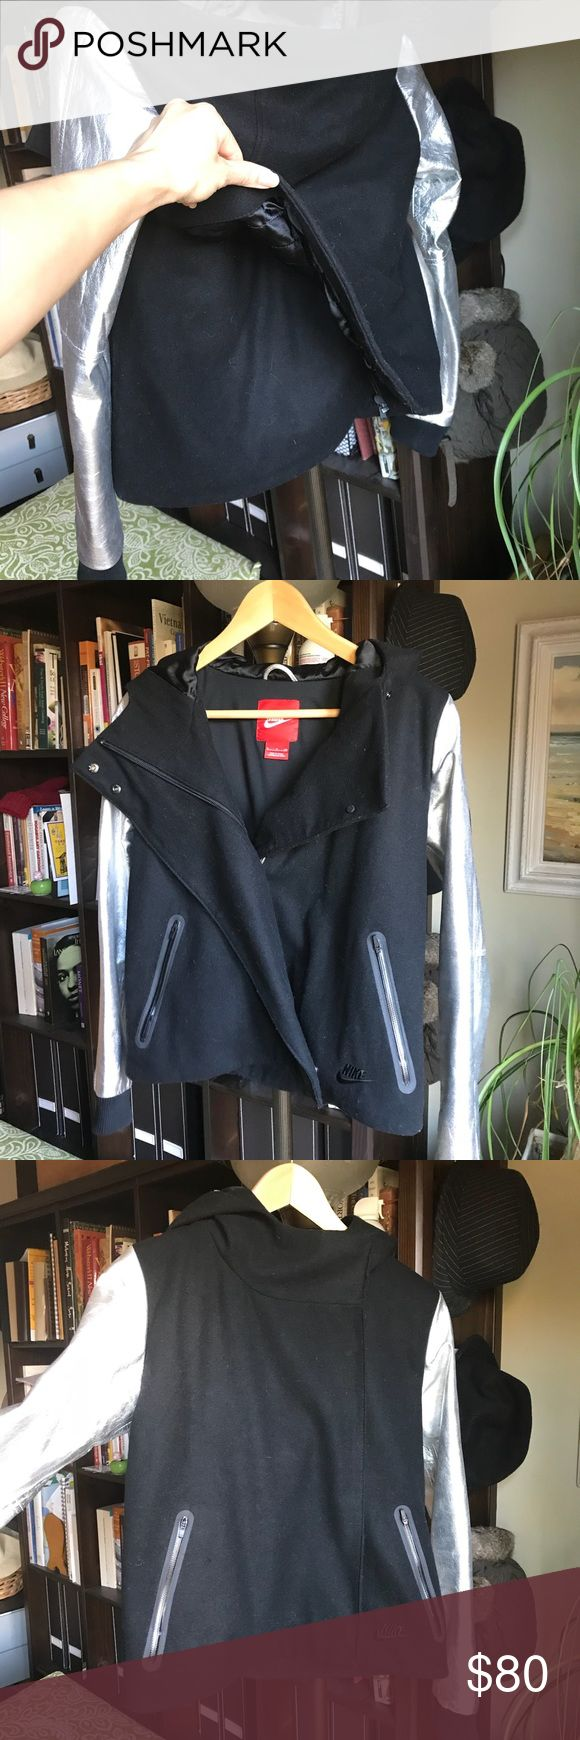 Limited edition Nike sports jacket Wool and leather moto style sports jacket. Worn twice. Statement piece. Spliced back details. Im allergic to wool! :( Jackets & Coats